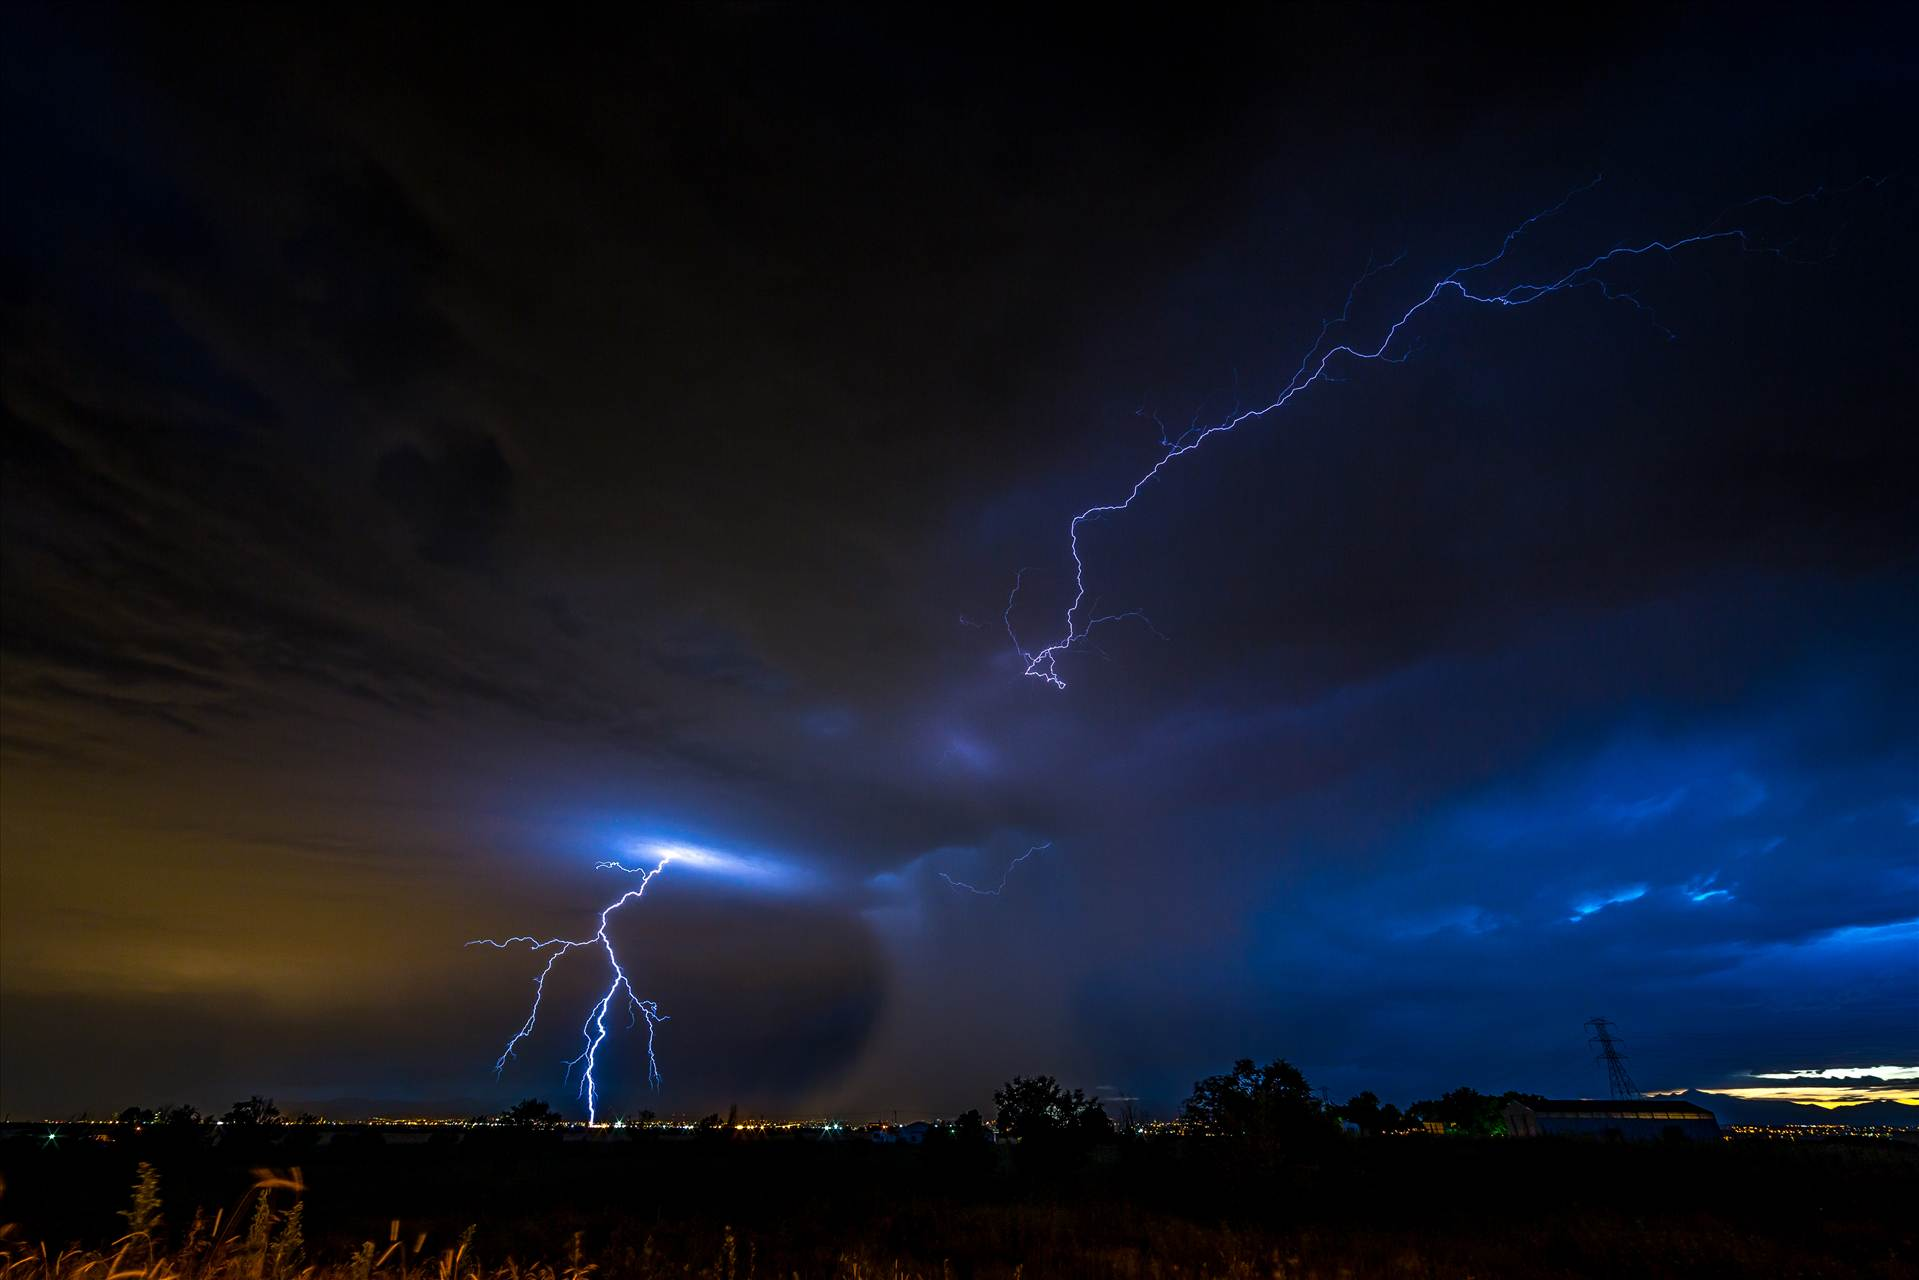 Lightning Flashes 5 - A series of shots from the end of the street, during a powerful lightning storm near Reunion, Colorado. by D Scott Smith